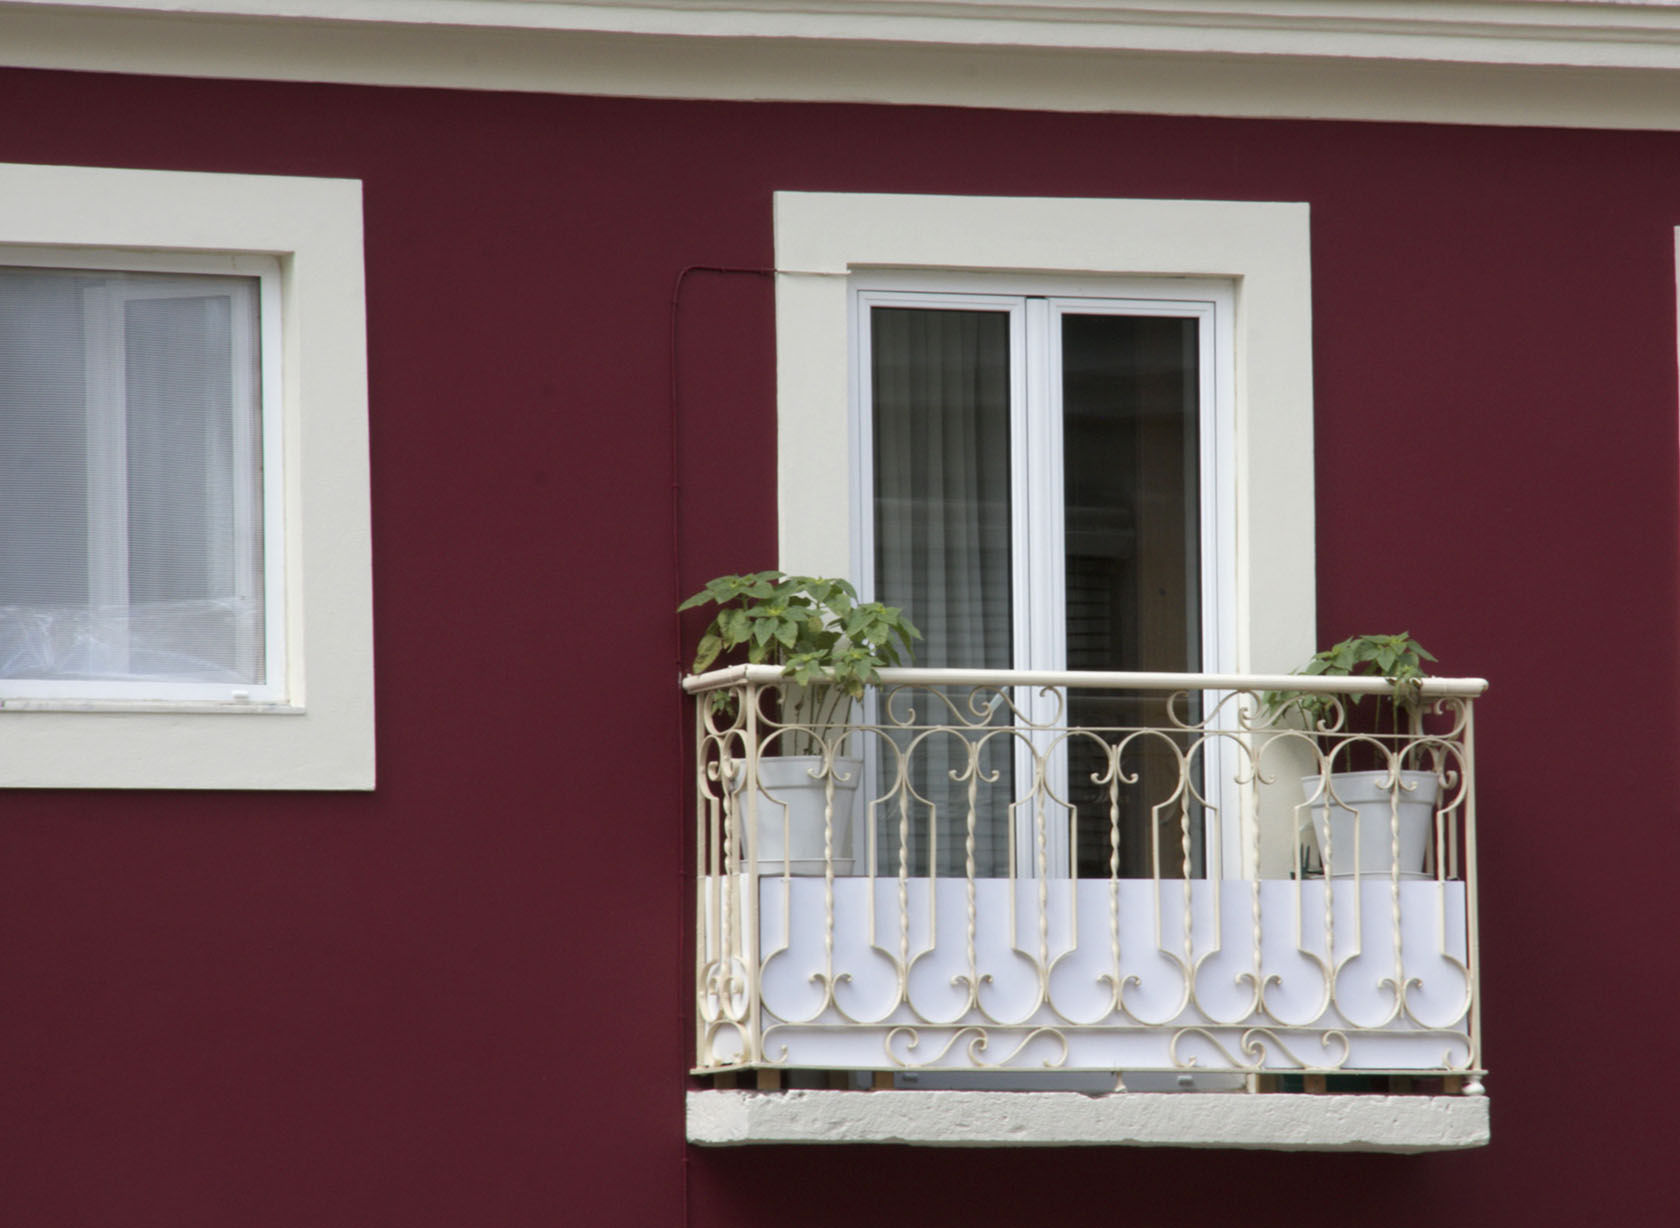 Lisbon in Red, Lisbon Window #Portugal #Lisbon @GingerandNutmeg